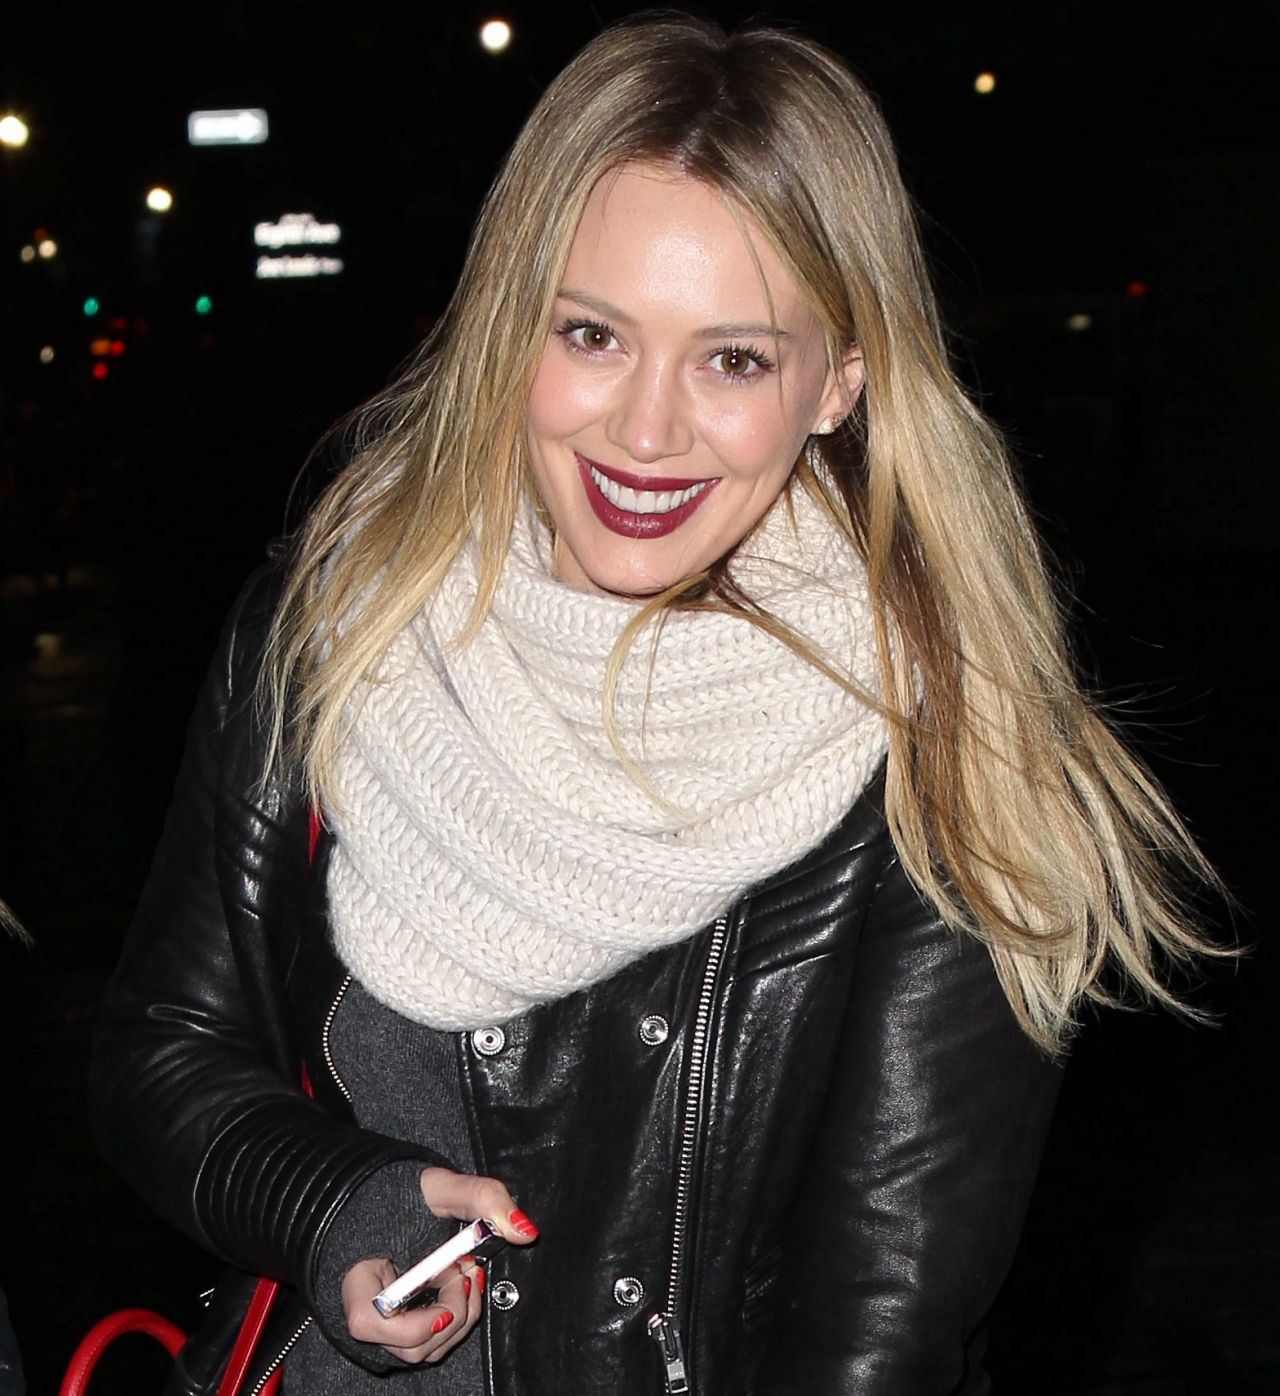 Hilary Duff Night Out Style - February 2014